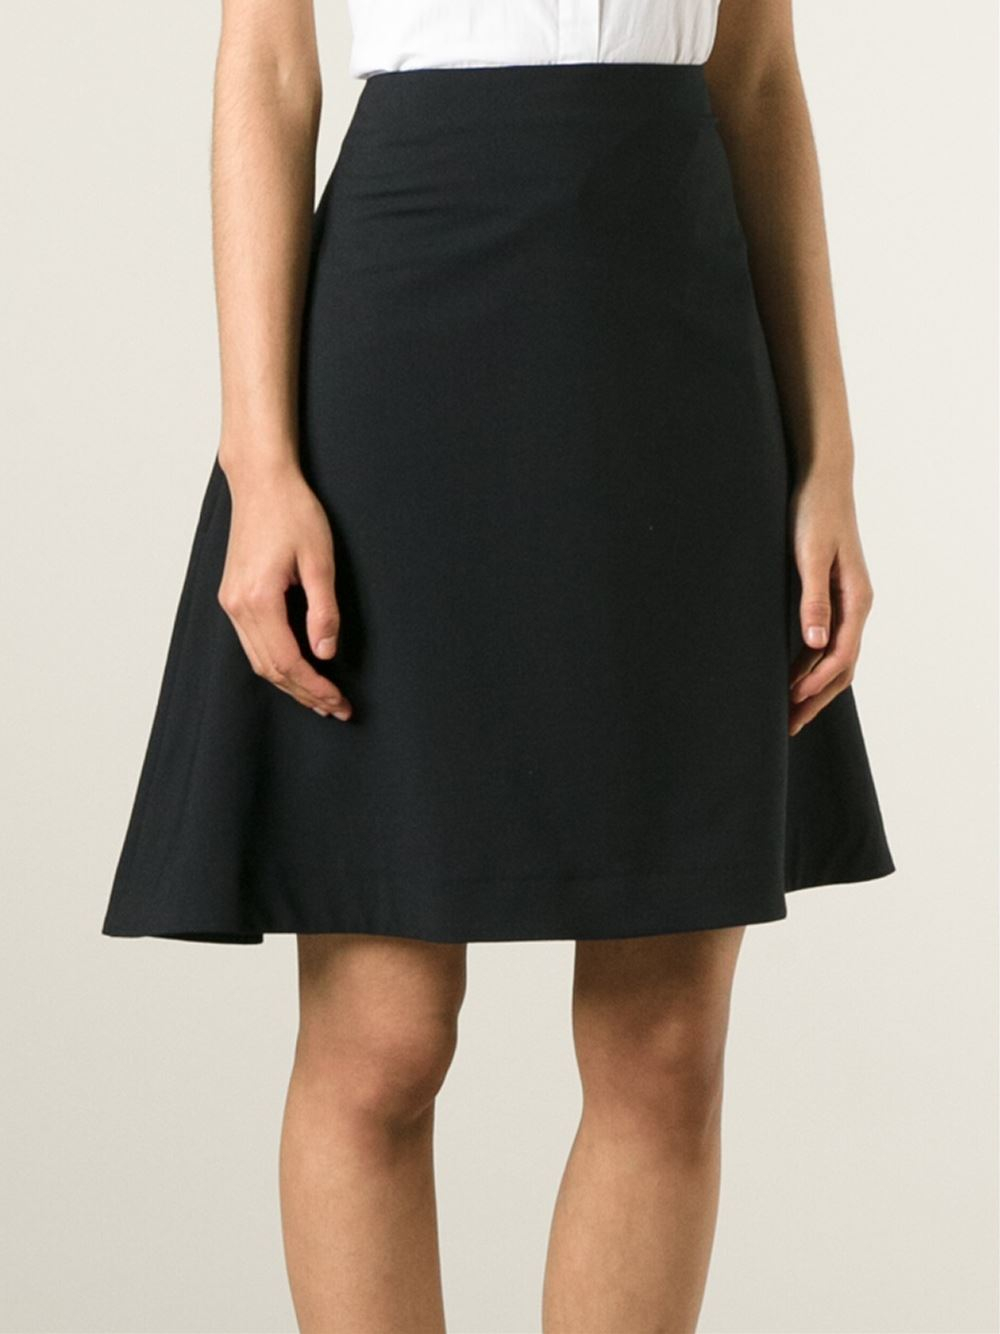 acne a line skirt in black lyst